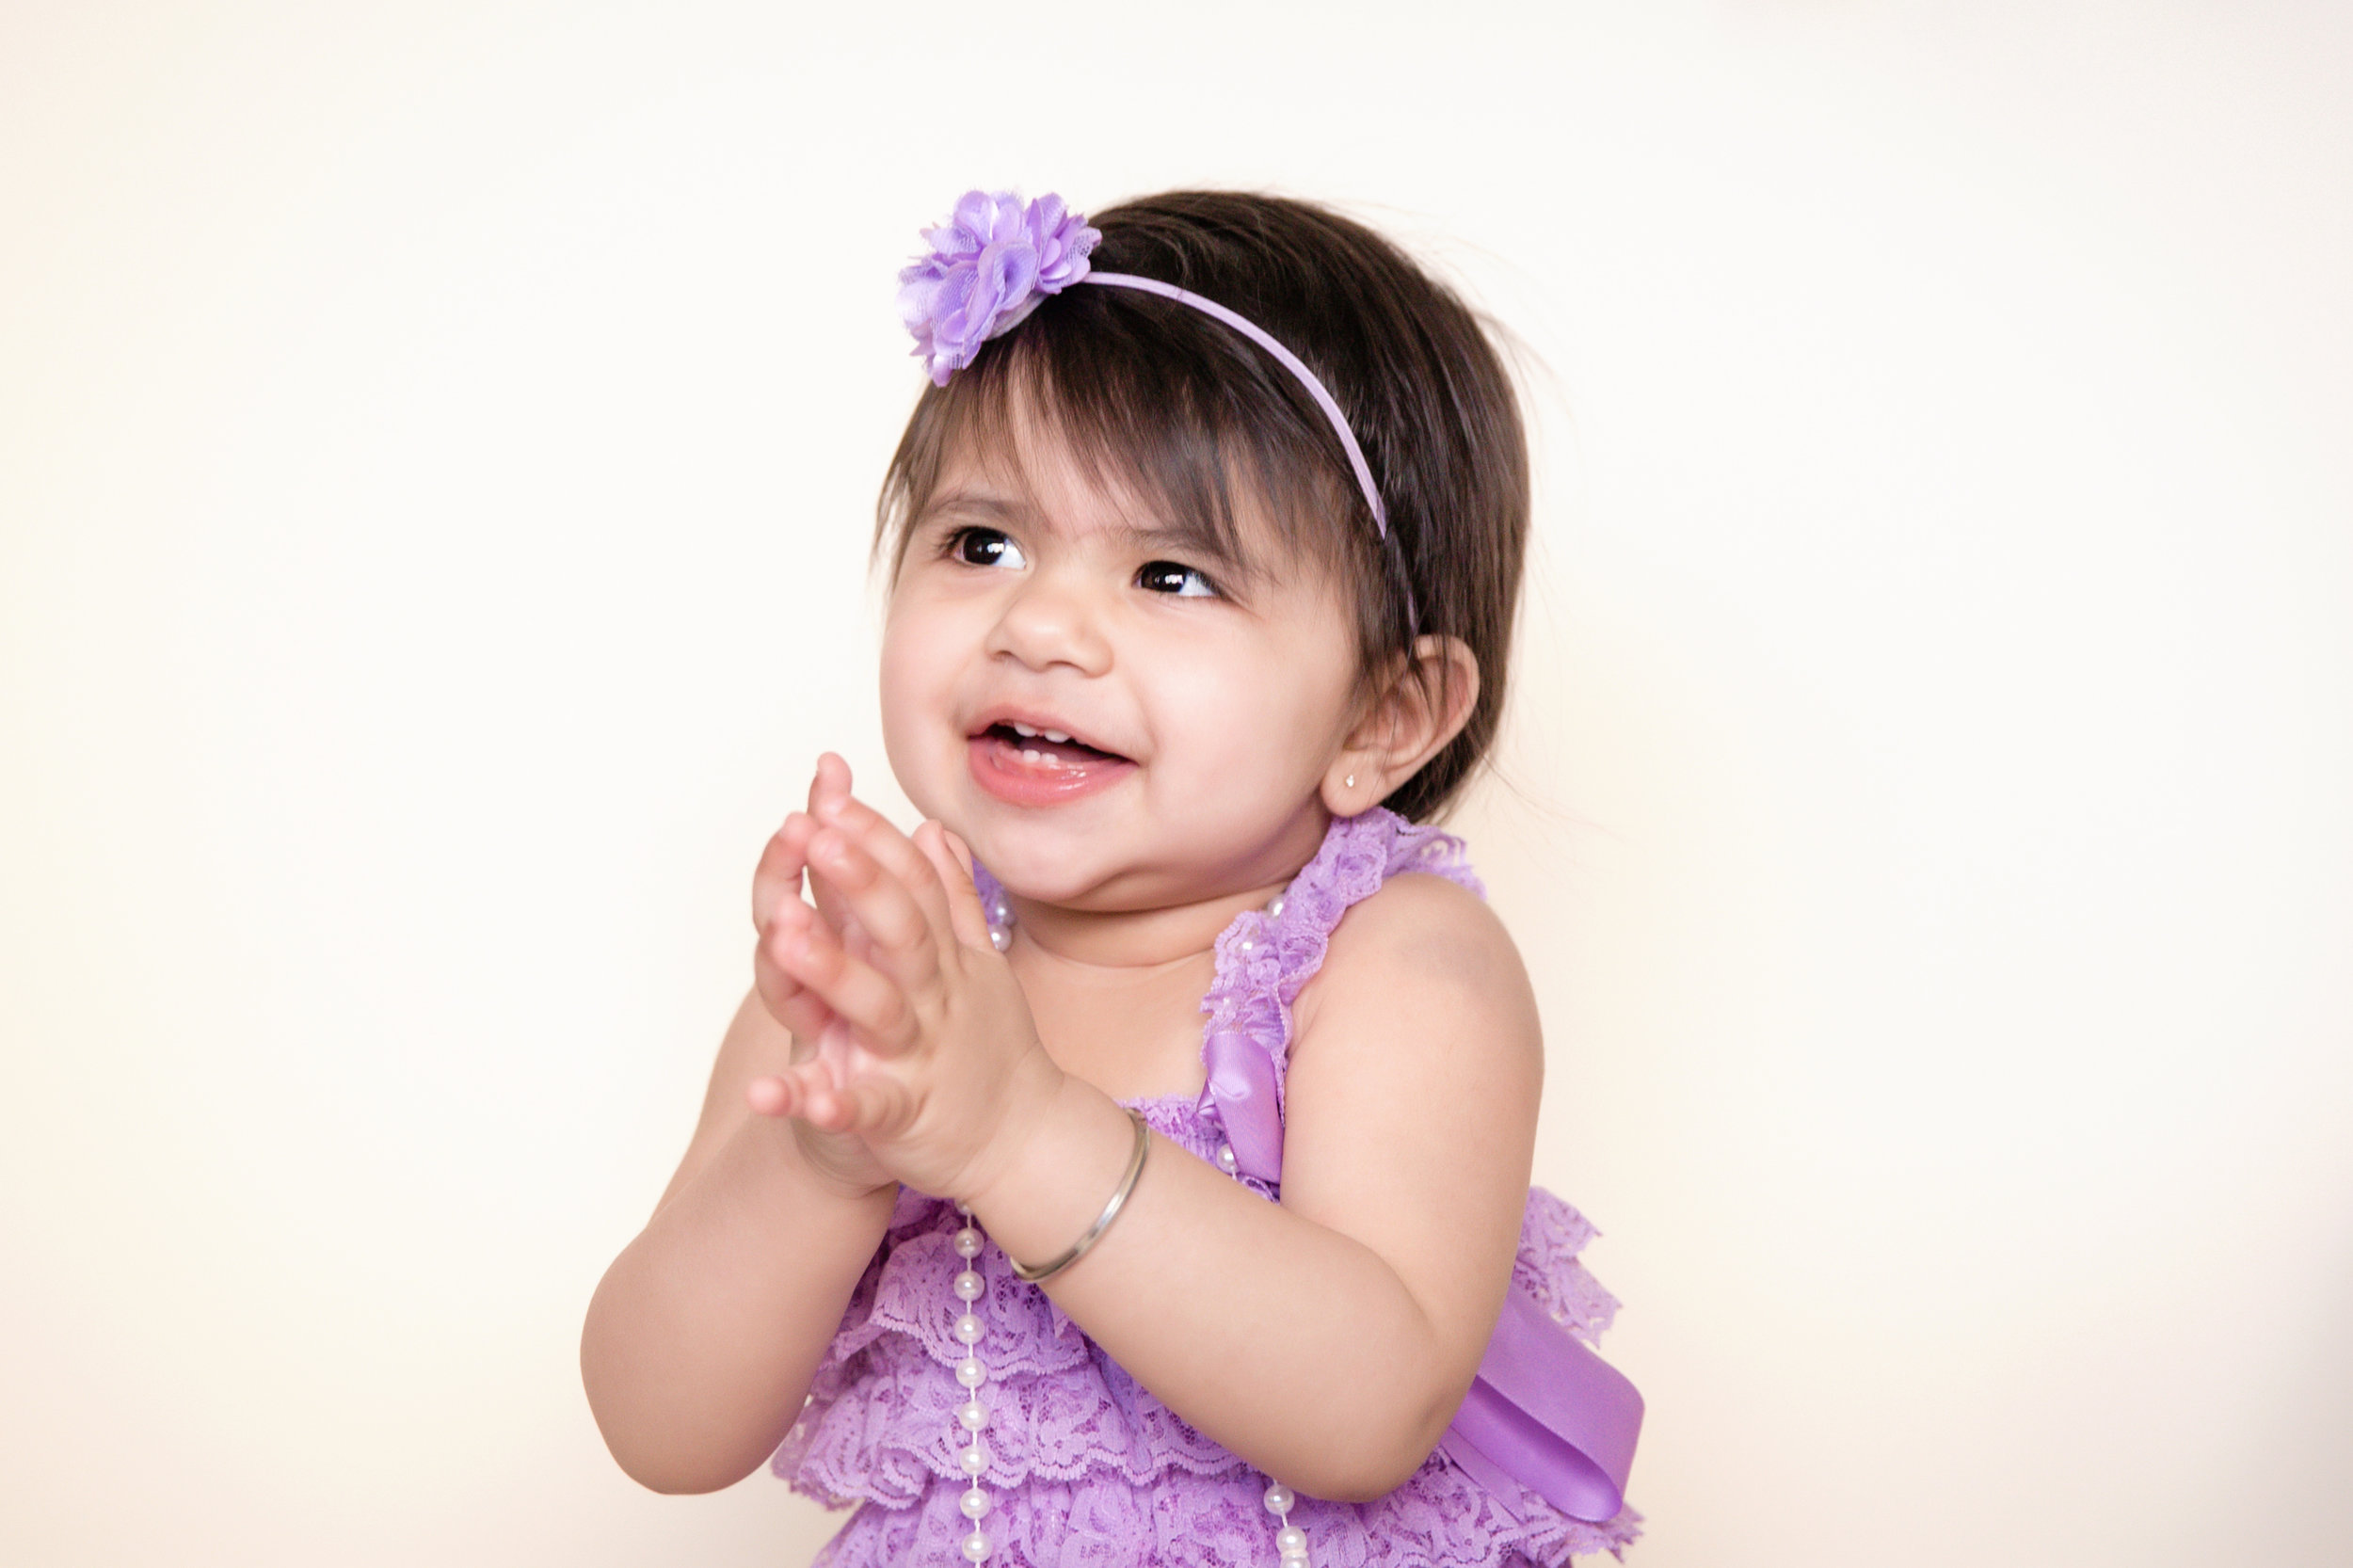 Sweet little girl, dressed in a purple romper clapping hands. Calgary and Airdrie baby photographer. Milashka photography